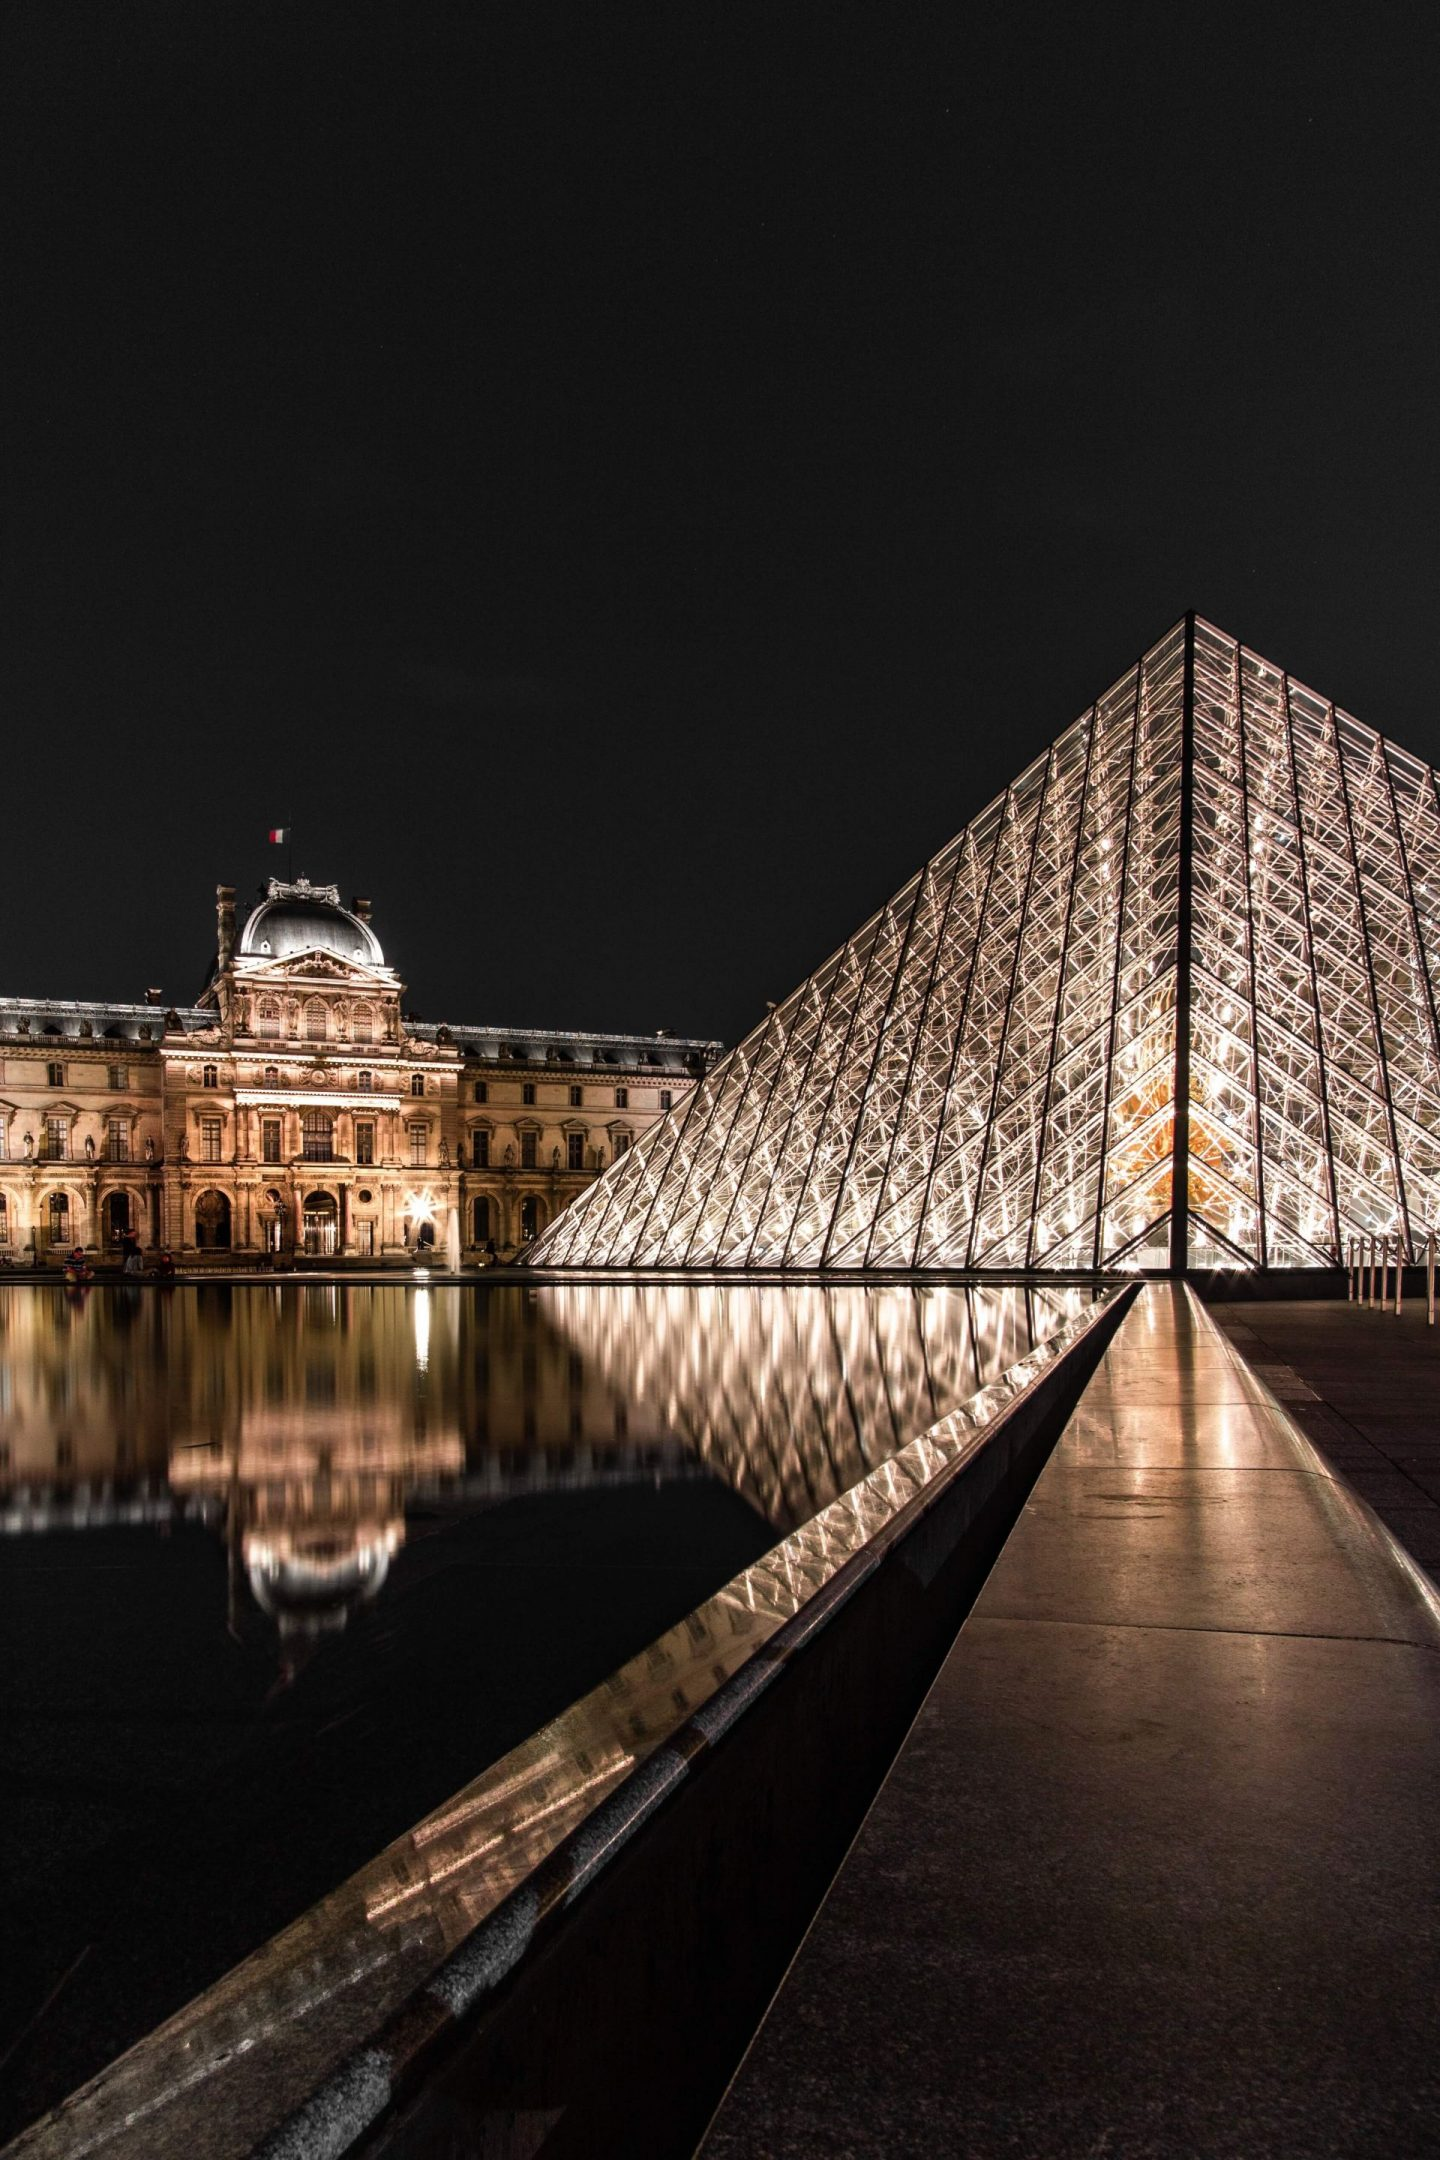 things to do in paris, bucket list experiences, city in france, le marais, the louvre by night, travel inspiration